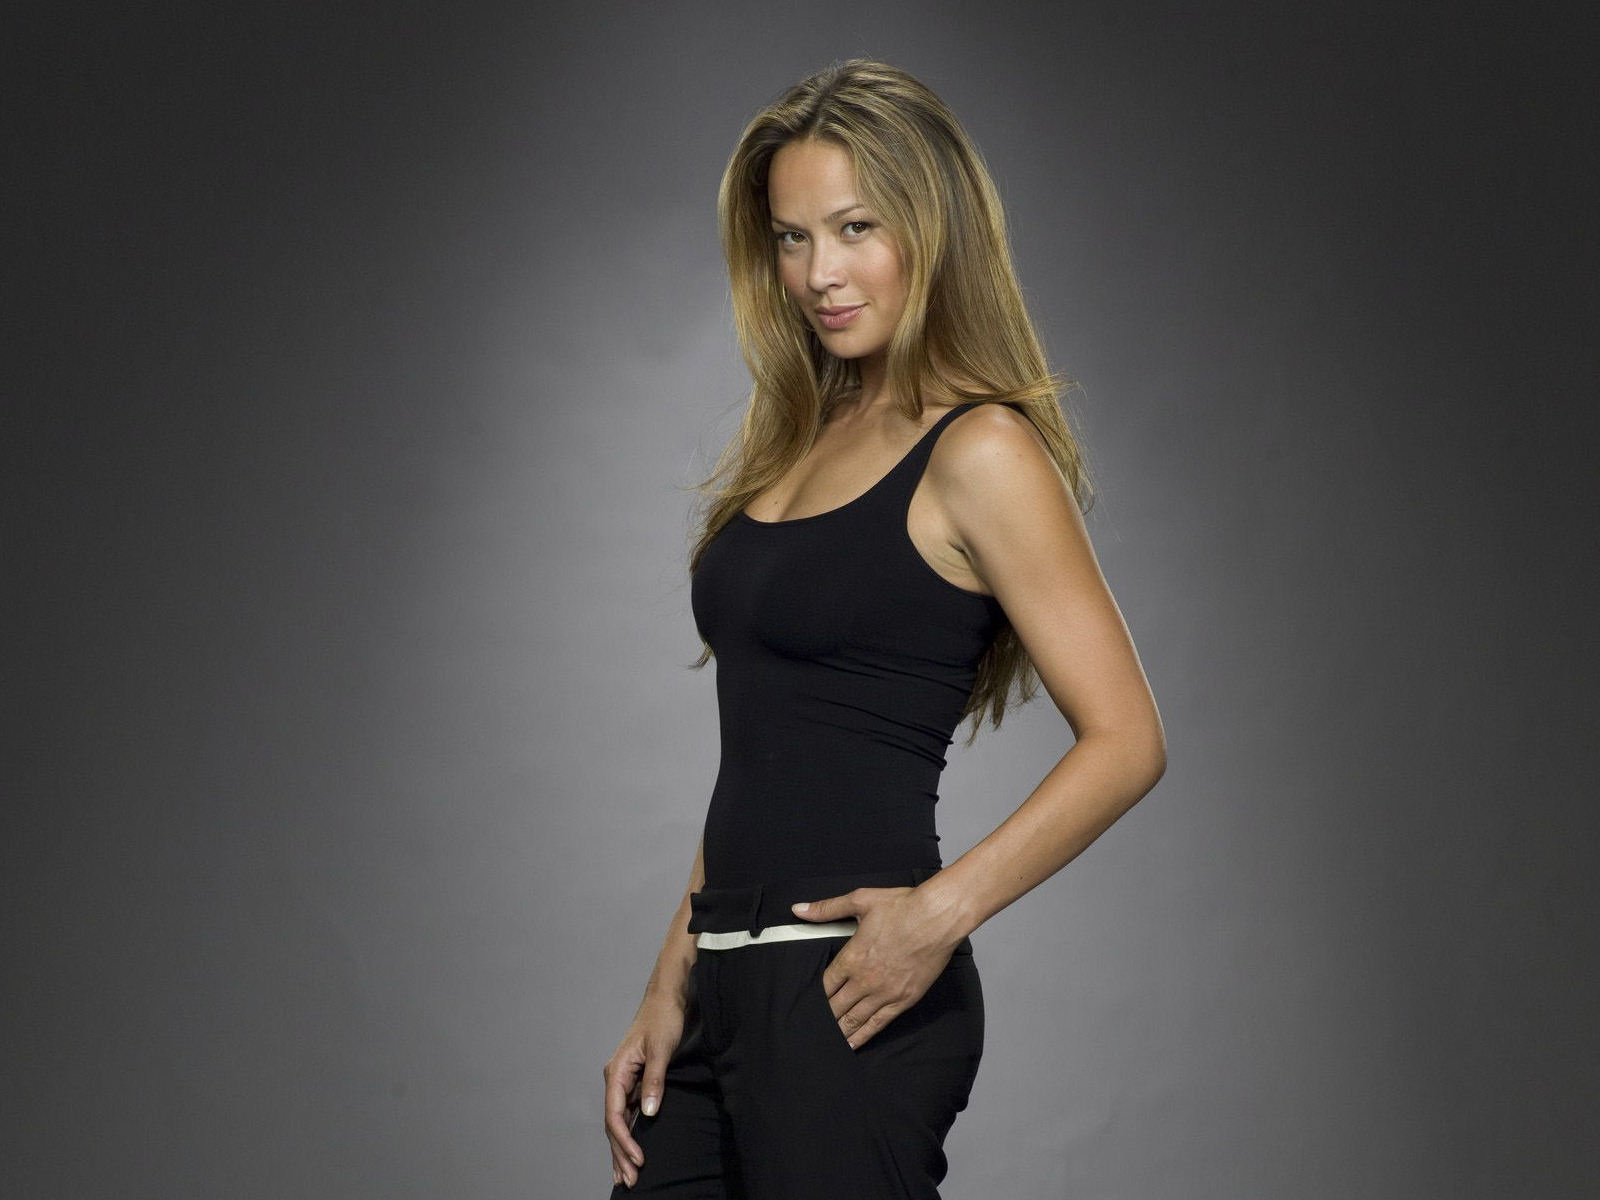 Moon Bloodgood Background